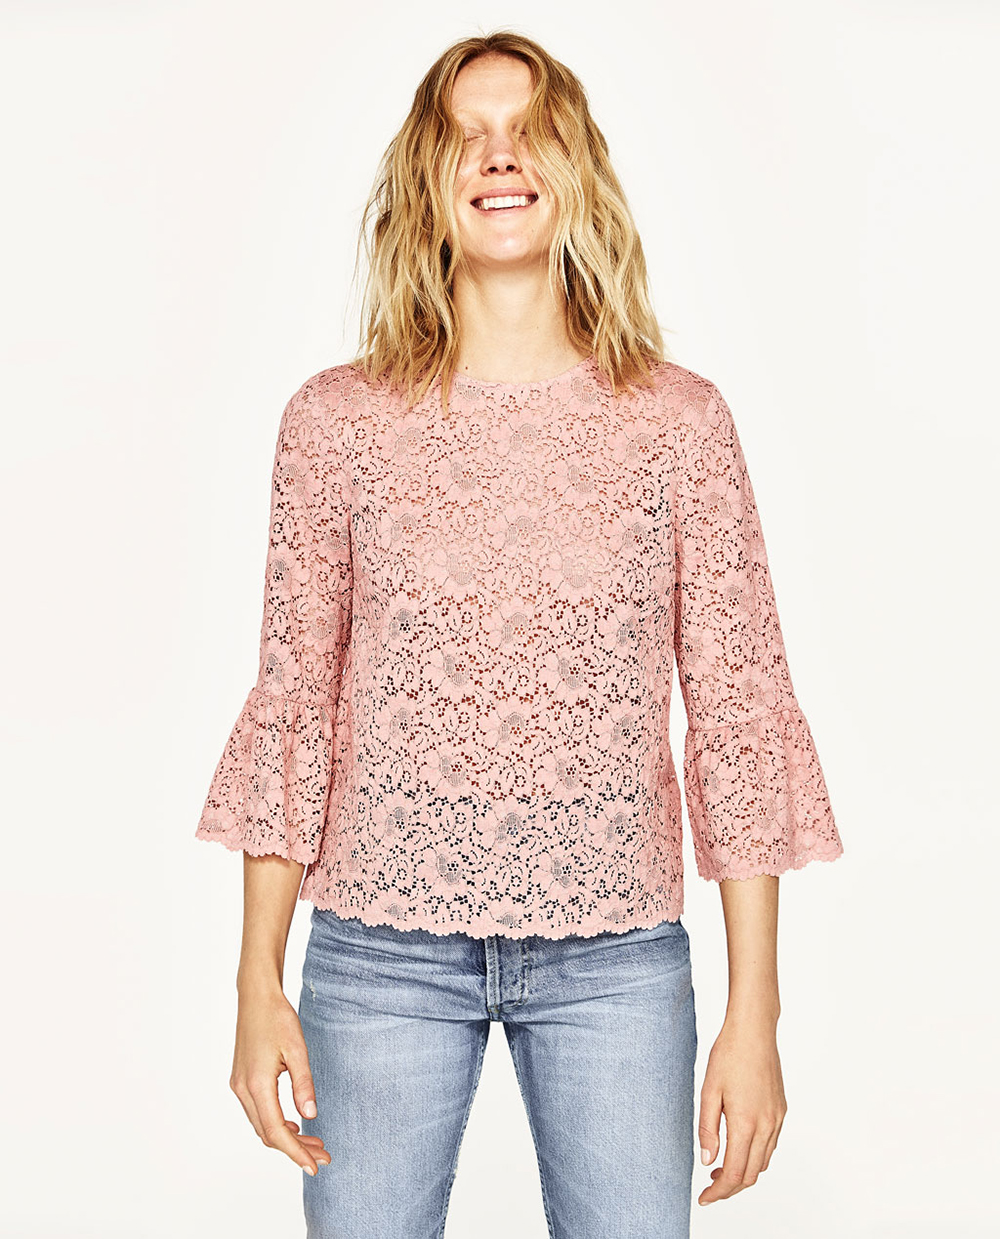 Zara Lace Top With Frilled Sleeves - Statement Sleeves